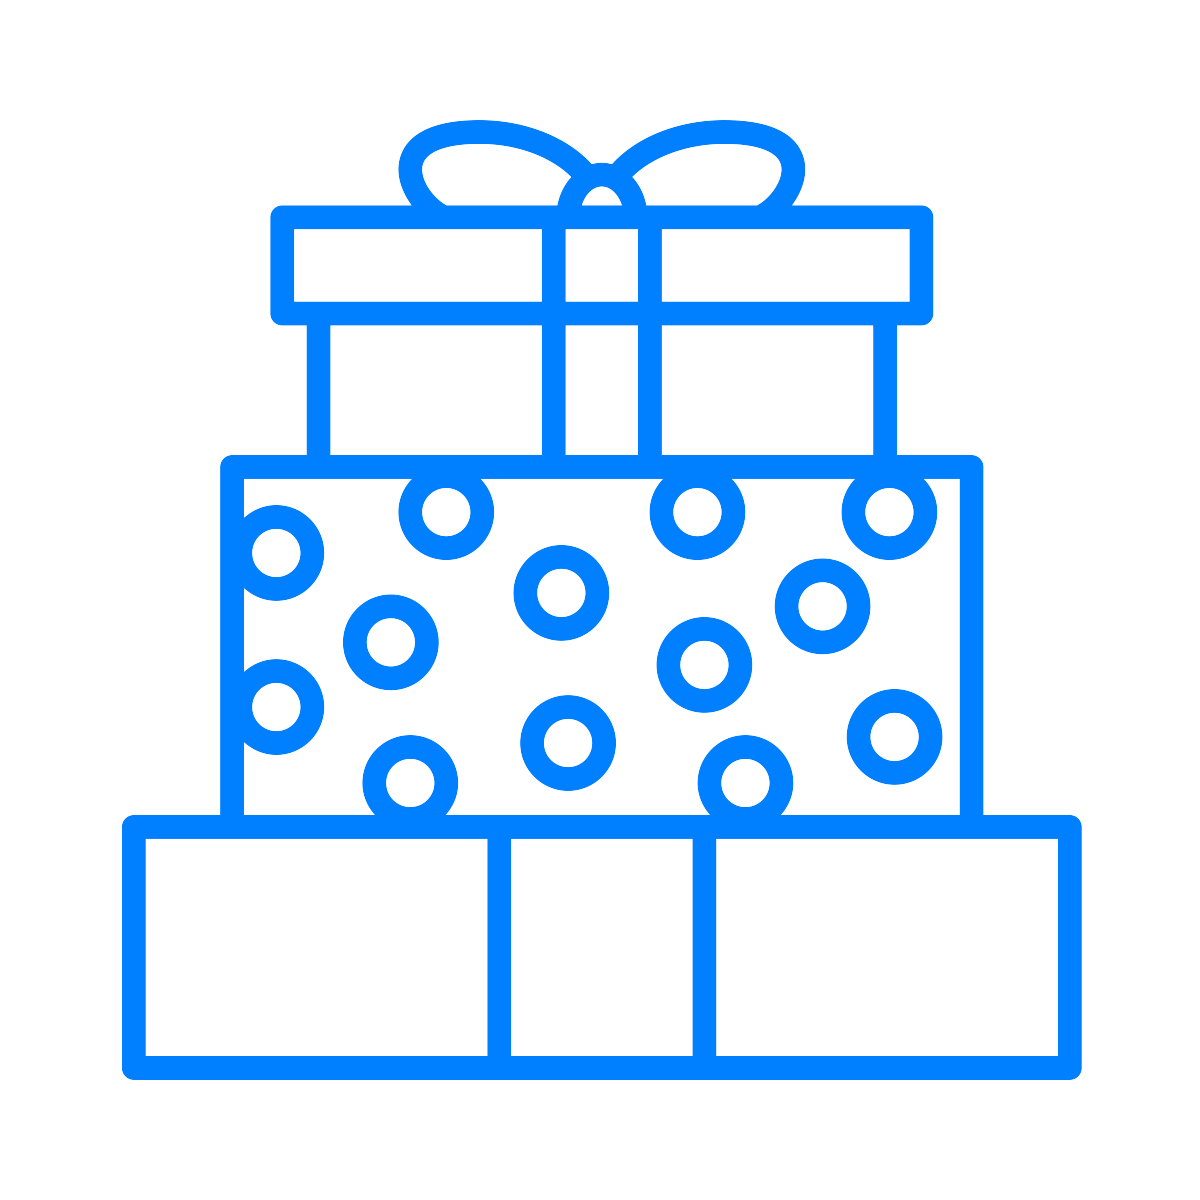 line drawing of a stack of wrapped gifts - colour is blue